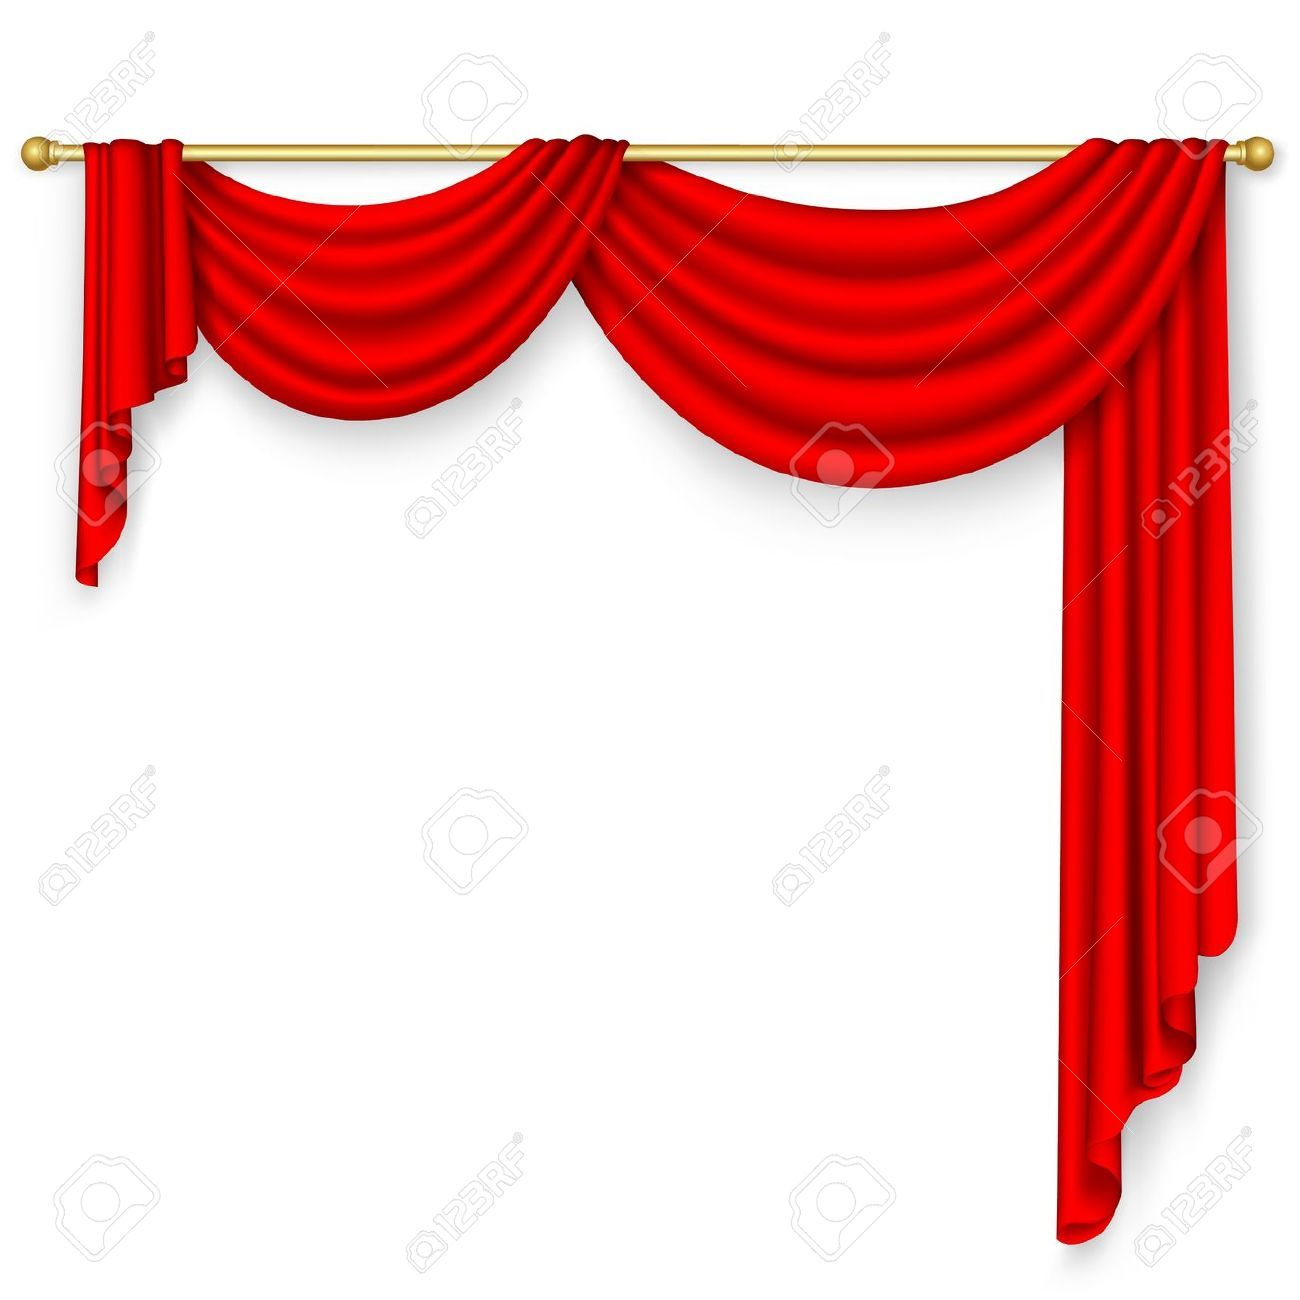 Awesome opera stage pencil. Curtain clipart